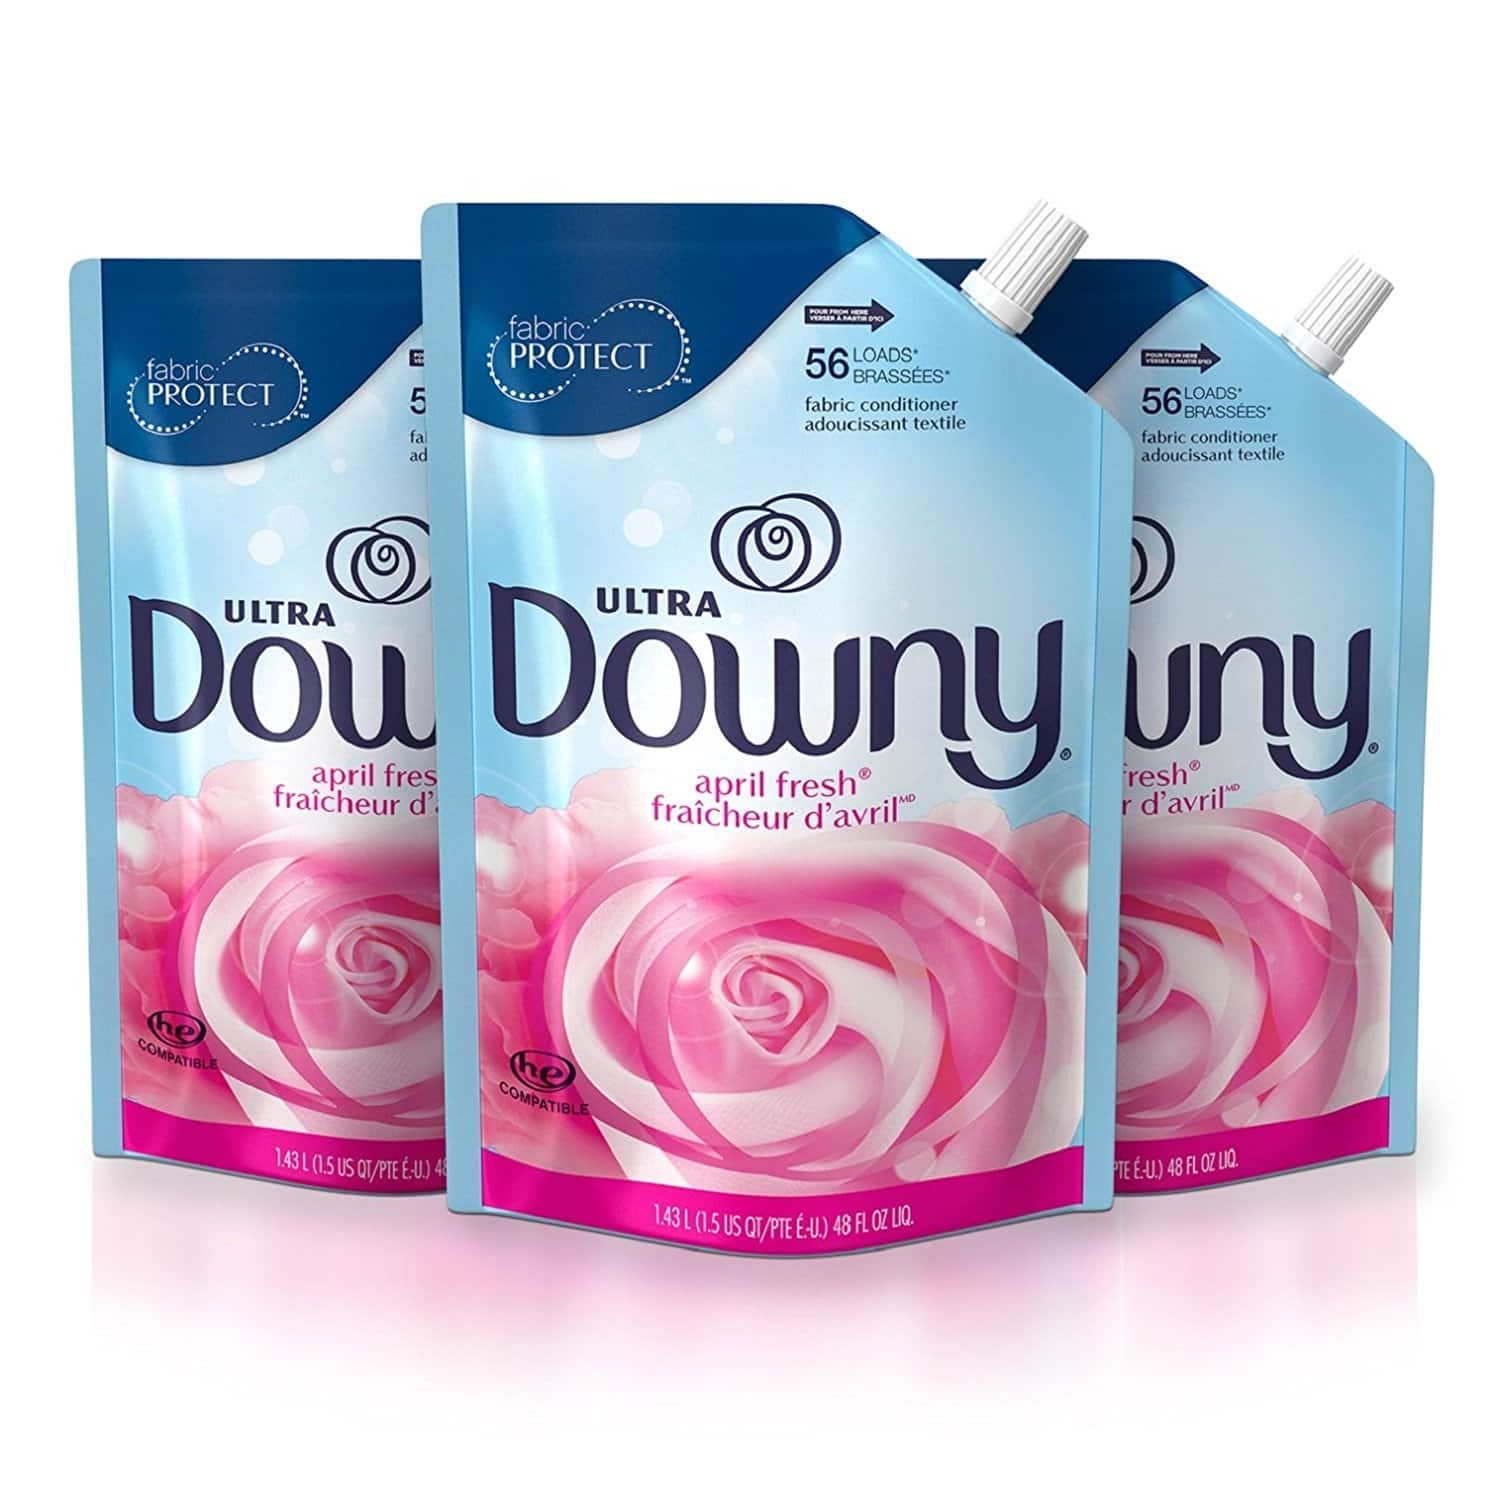 Downy Ultra April Fresh Liquid Fabric Conditioner Smart Pouch, Fabric Softener - 48 Oz. Pouches, 3 Pack $10.71 (after tax, $9.89 before)